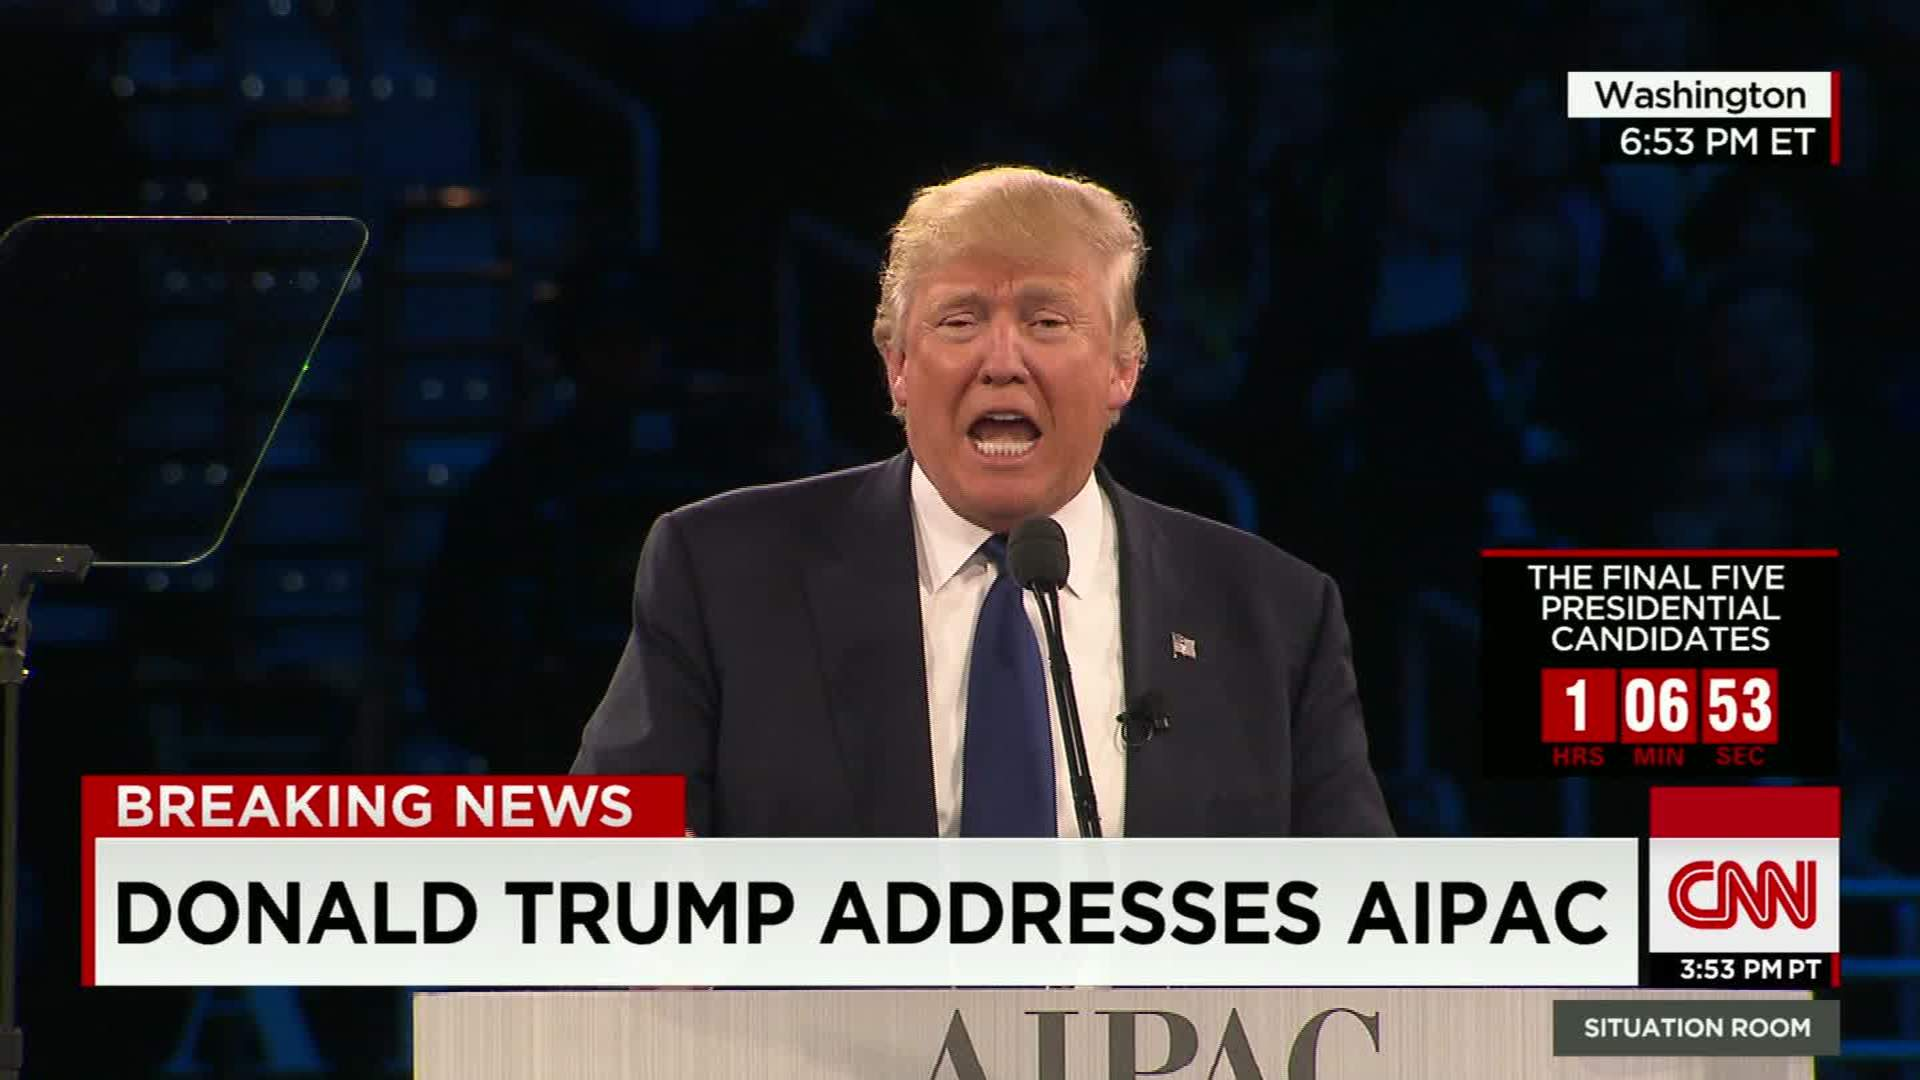 Donald Trump Exposed AIPAC